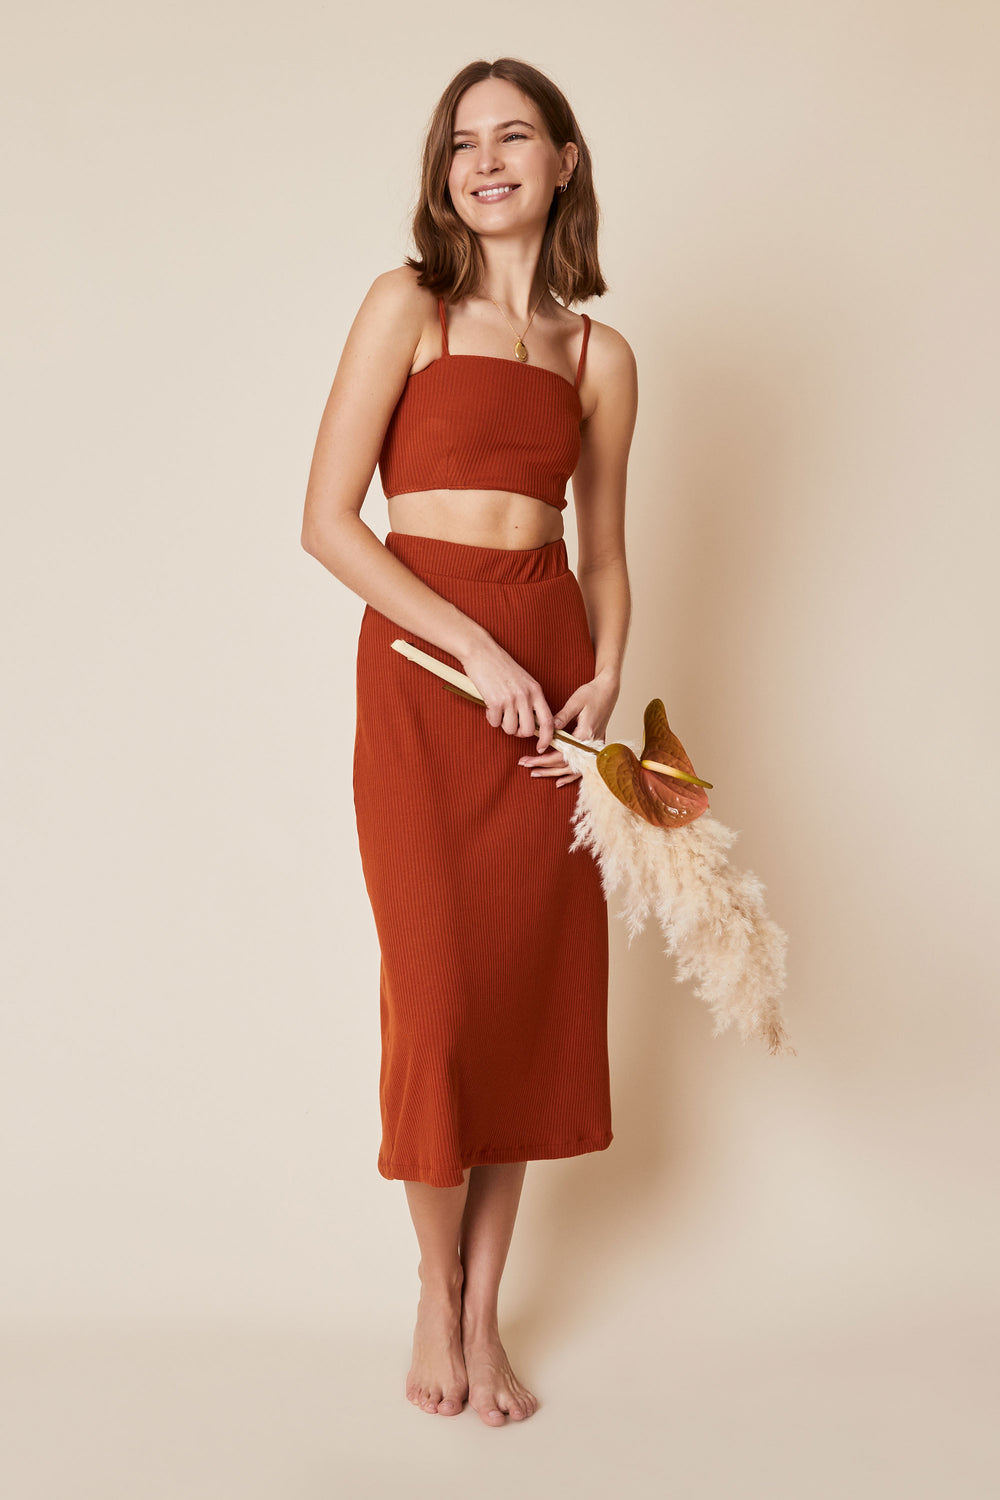 Finn Skirt in Rust Rib - Whimsy & Row